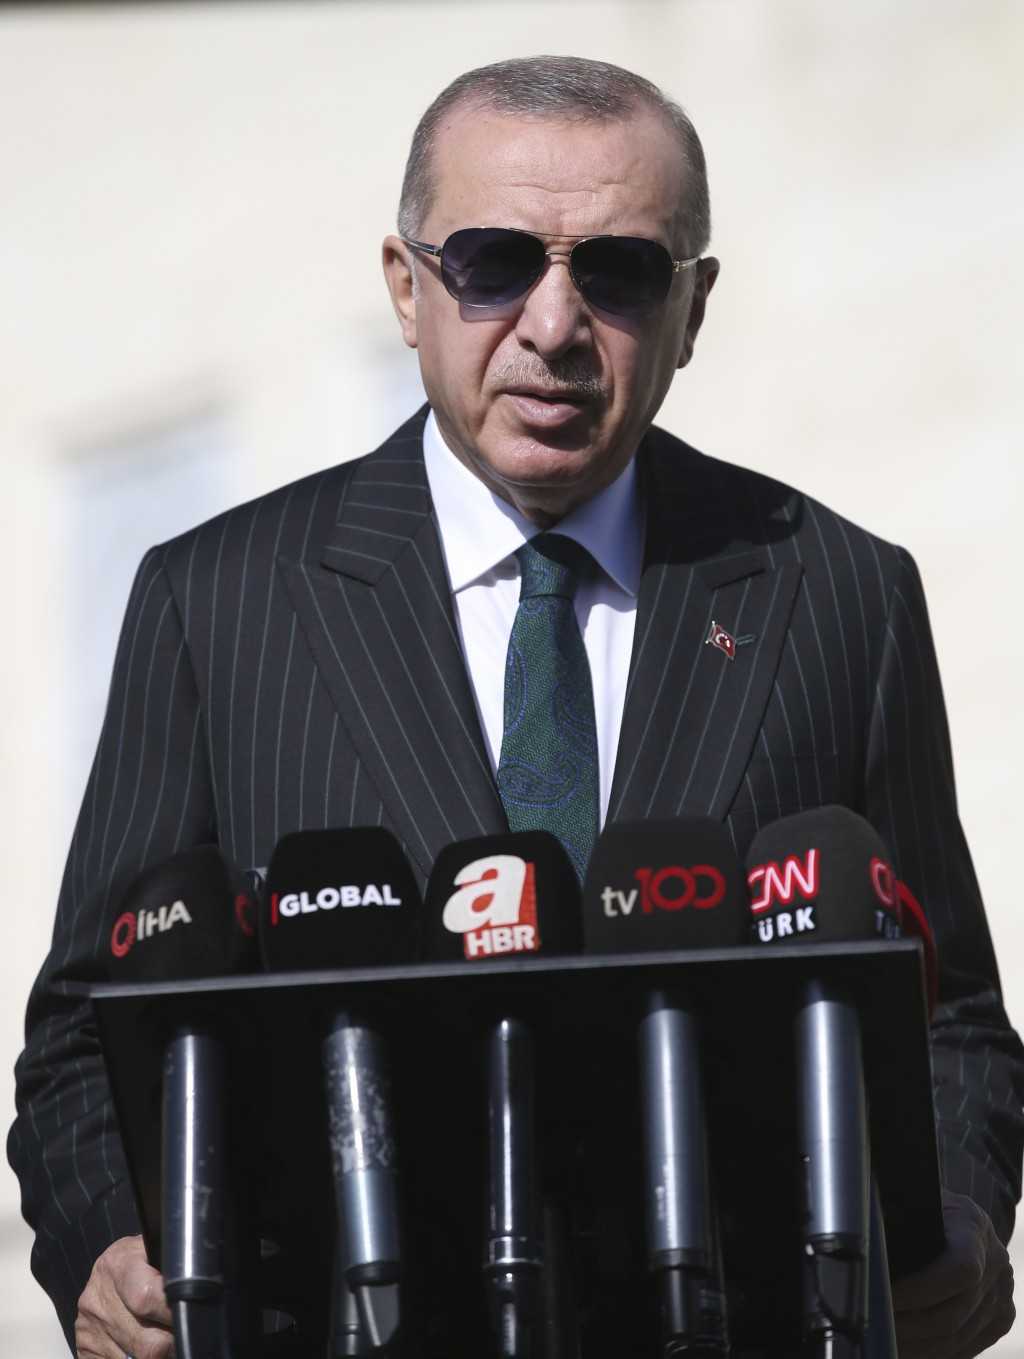 Turkey's President Recep Tayyip Erdogan speaks to the media, in Istanbul, Friday, Oct. 23, 2020. Erdogan confirmed the country tested its Russian-made...